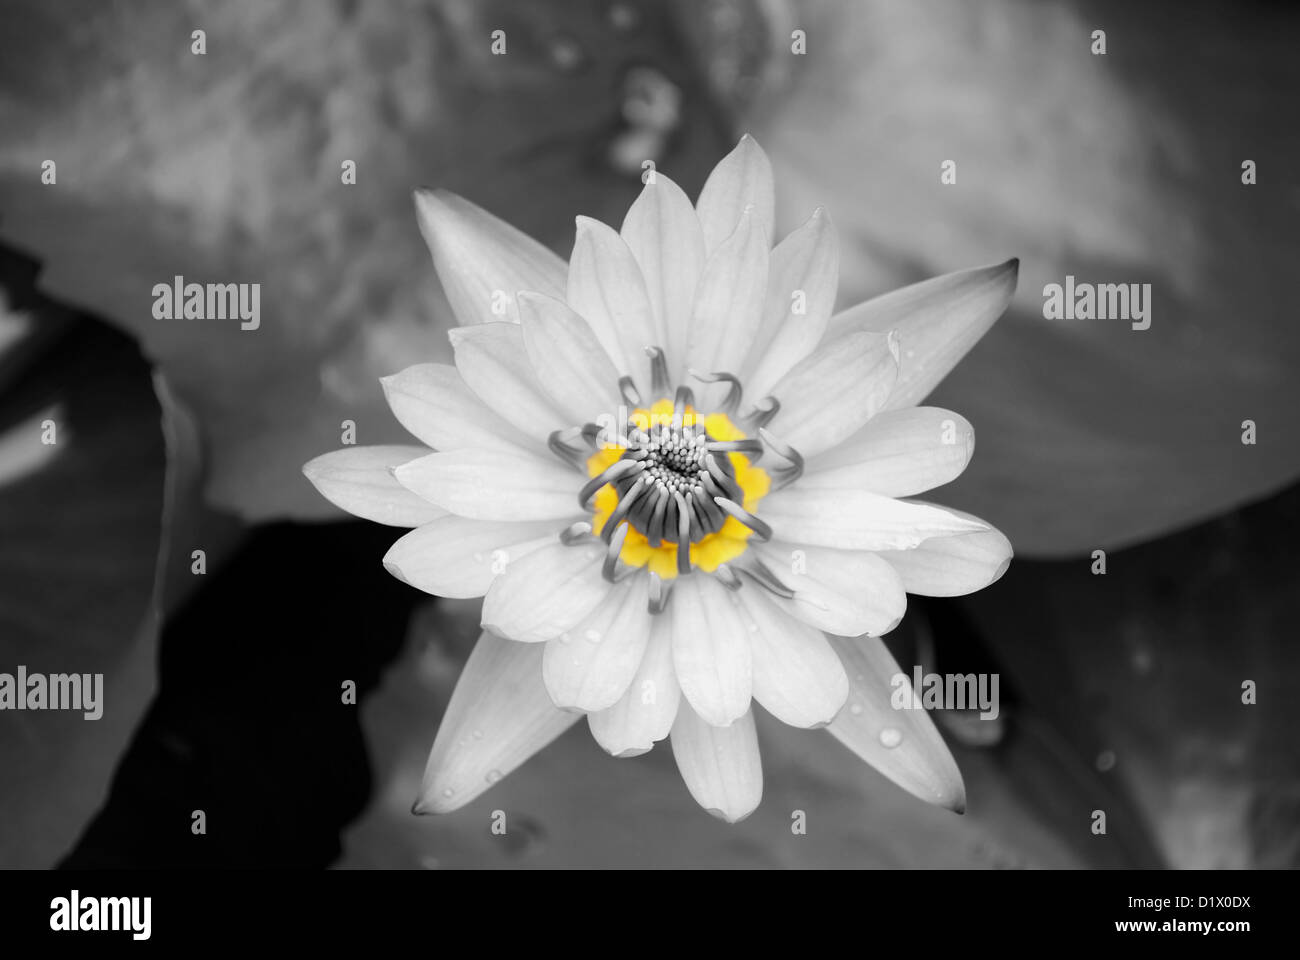 Water Lily Flower Latin Name Nymphaea Colorata Stock Photo 52816902